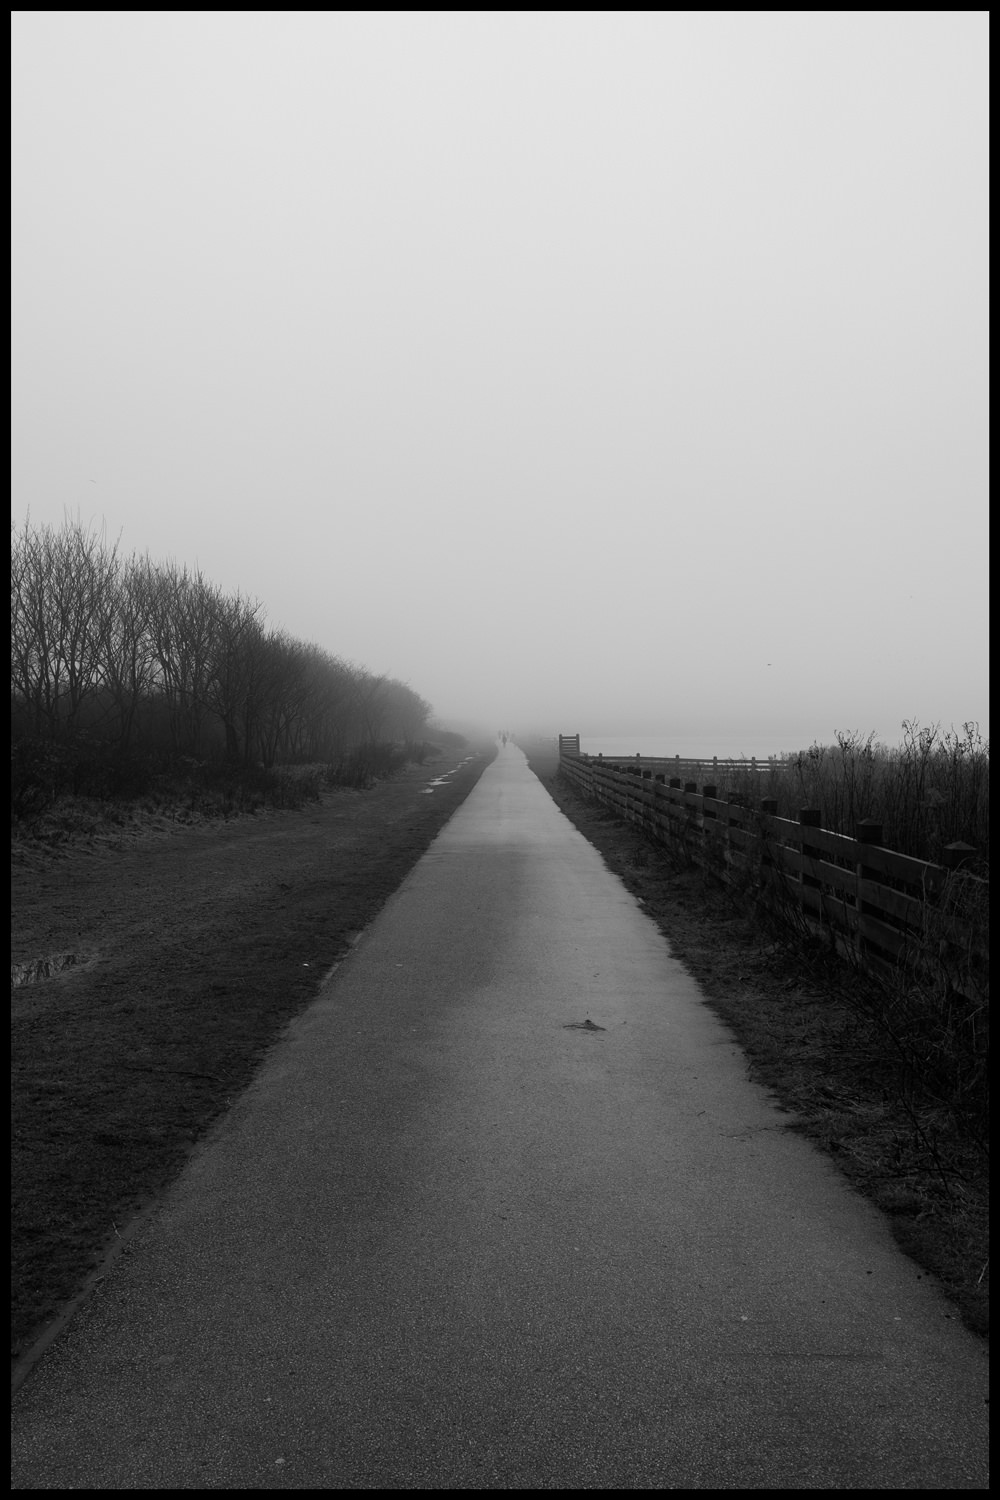 Looking down a long, straight pathway which is disappearing into the fog